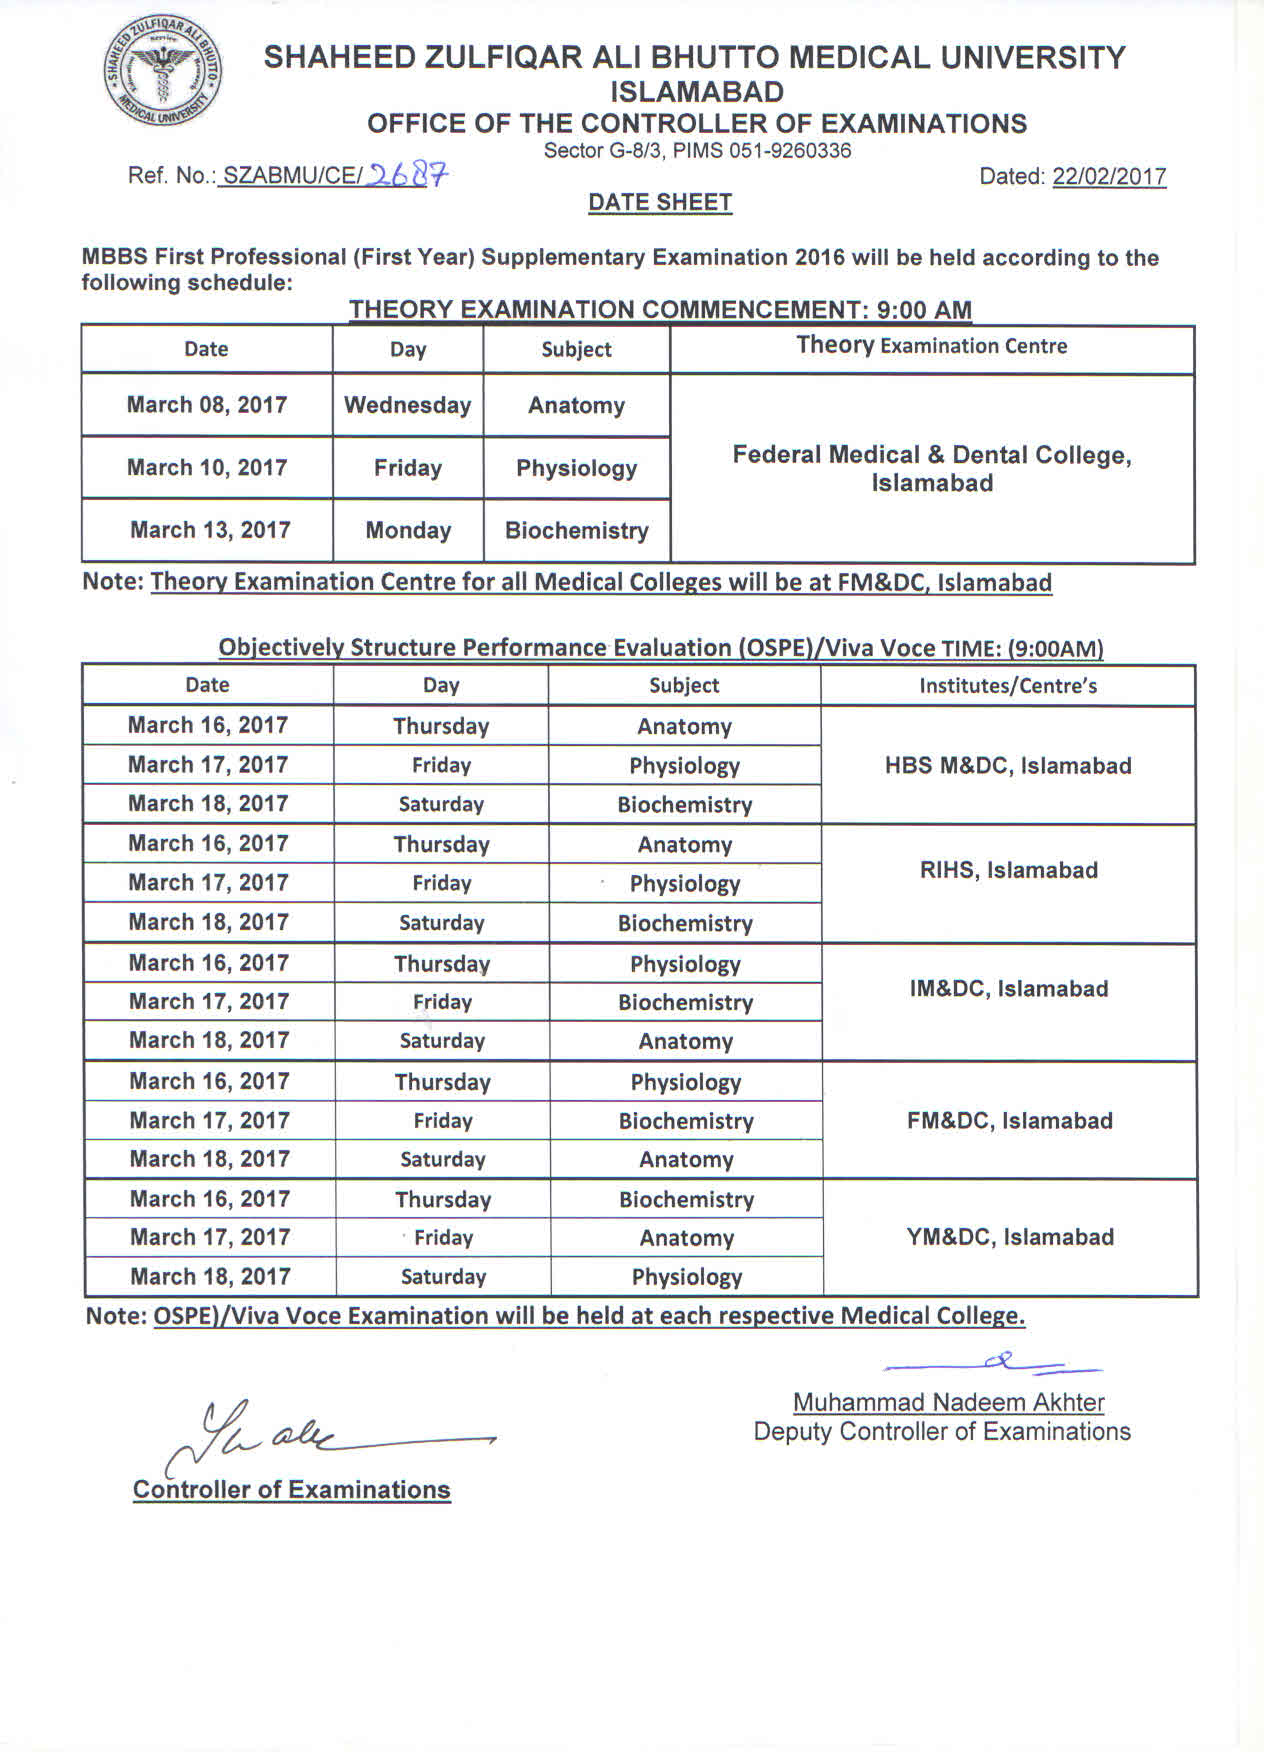 Date Sheet - MBBS 1st, 2nd and 3rd Professional Supplementary Exams 2016